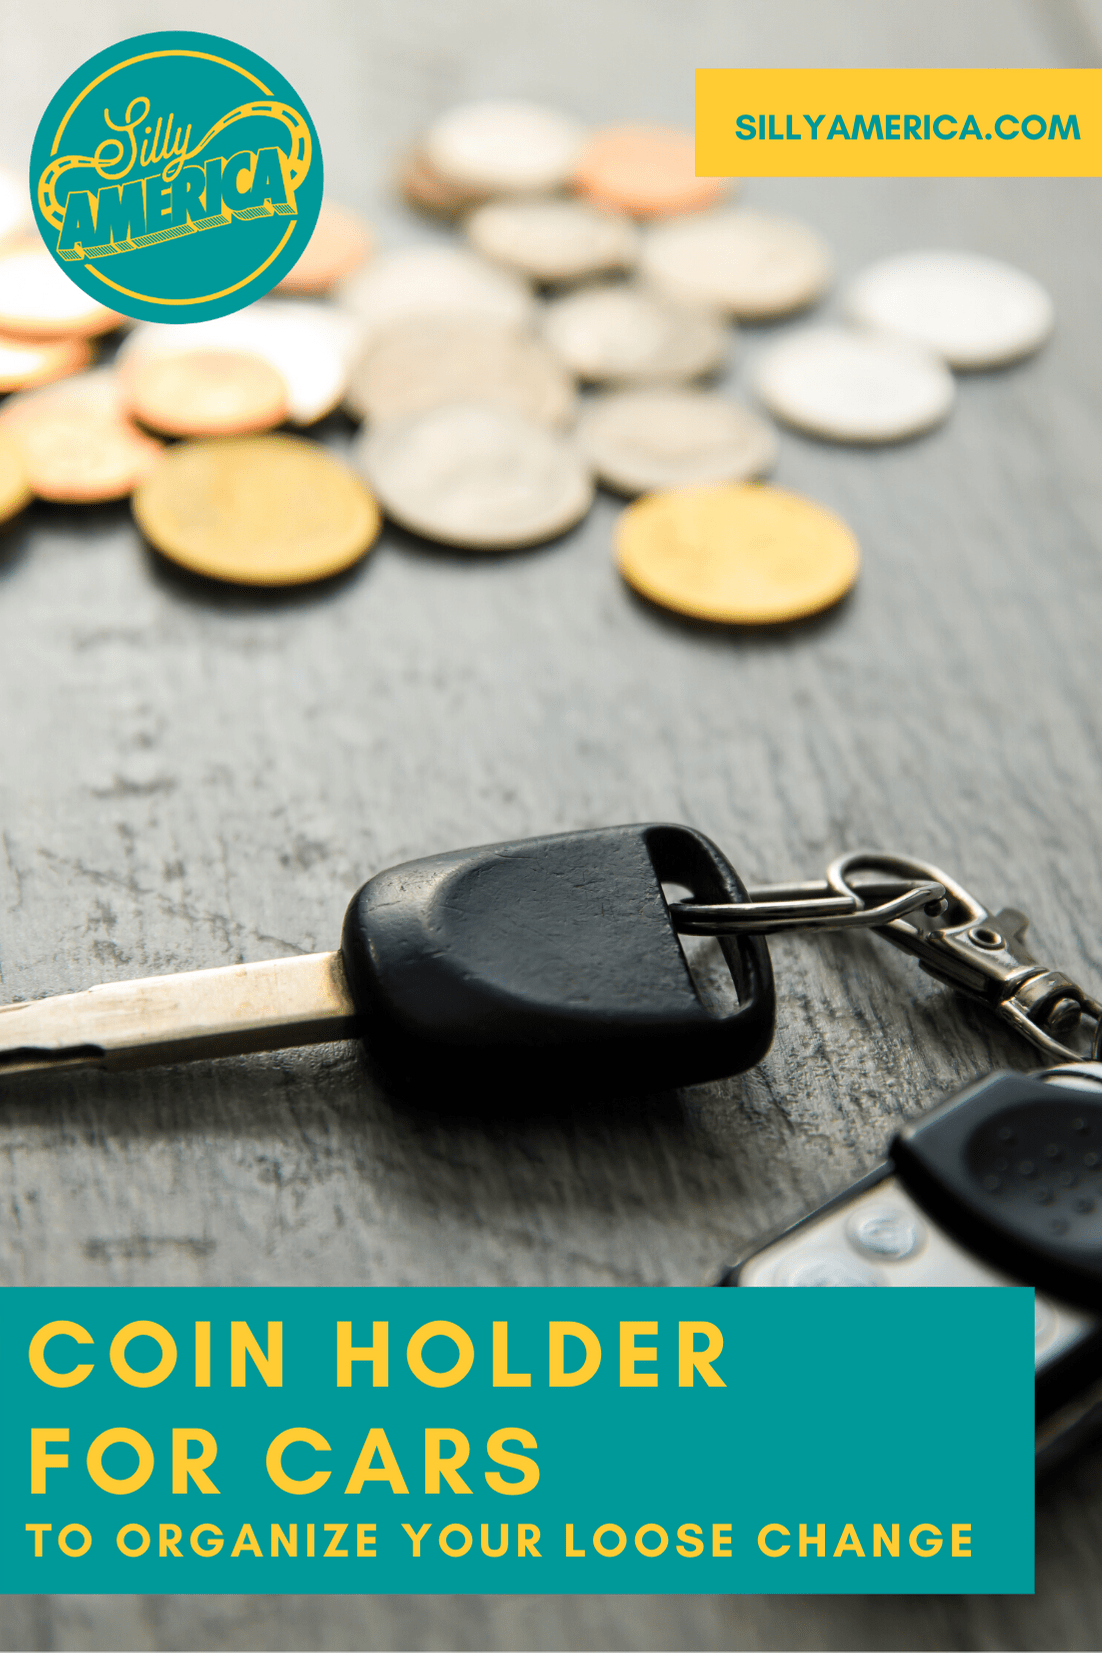 Having a coin holder for cars in your car will assure you that much-needed coins are always an arm-length away. Have change on had for tolls and parking and organize your loose change on your dashboard, glove box, or cup holder. #RoadTripEssentials #LongRoadTripEssentials #RoadTripEssentialsList #RoadTripEssentialsHacks #RoadTripEssentialsForCars #RoadTripEssentialsChecklist